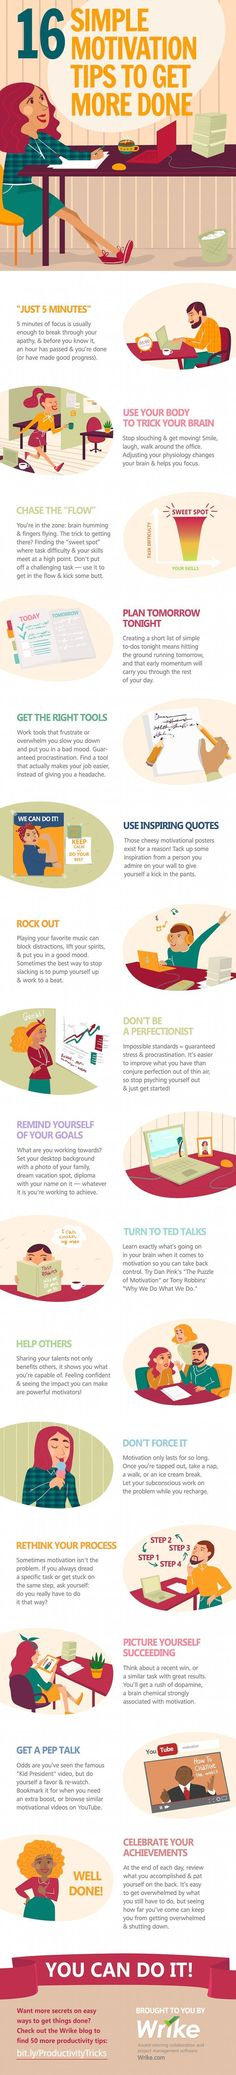 Motivational tips - to get things done...... We all need these on a Monday morning!!